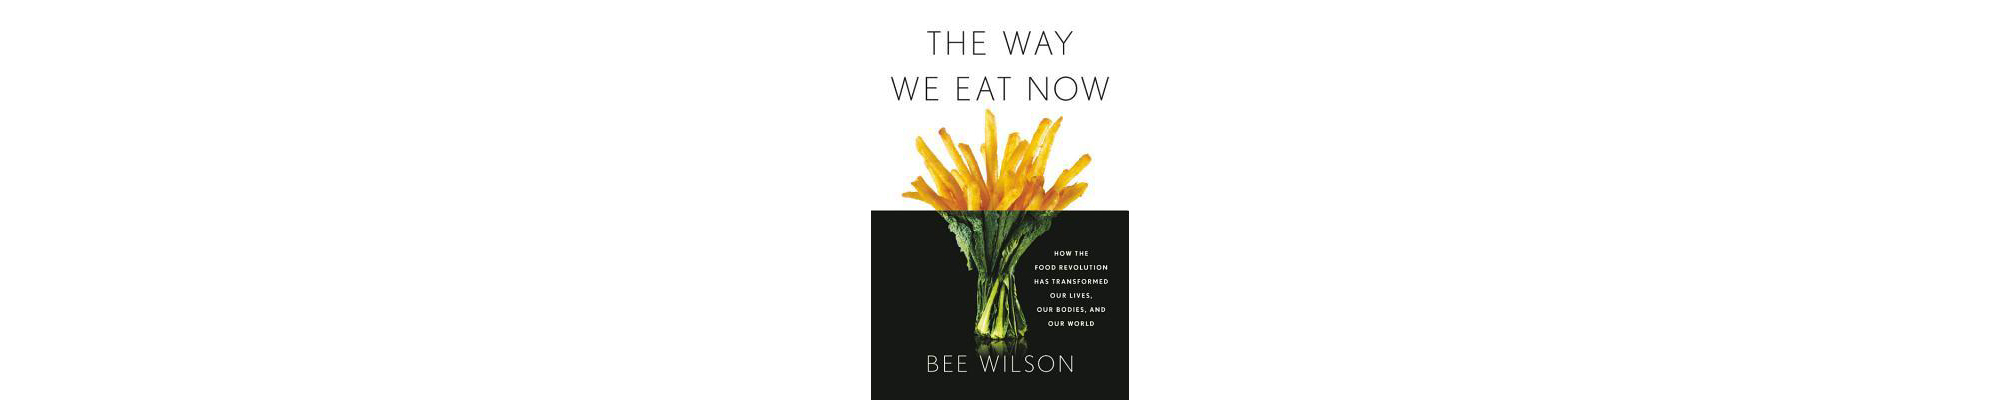 Cover of The Way We Eat Now, by Bee Wilson